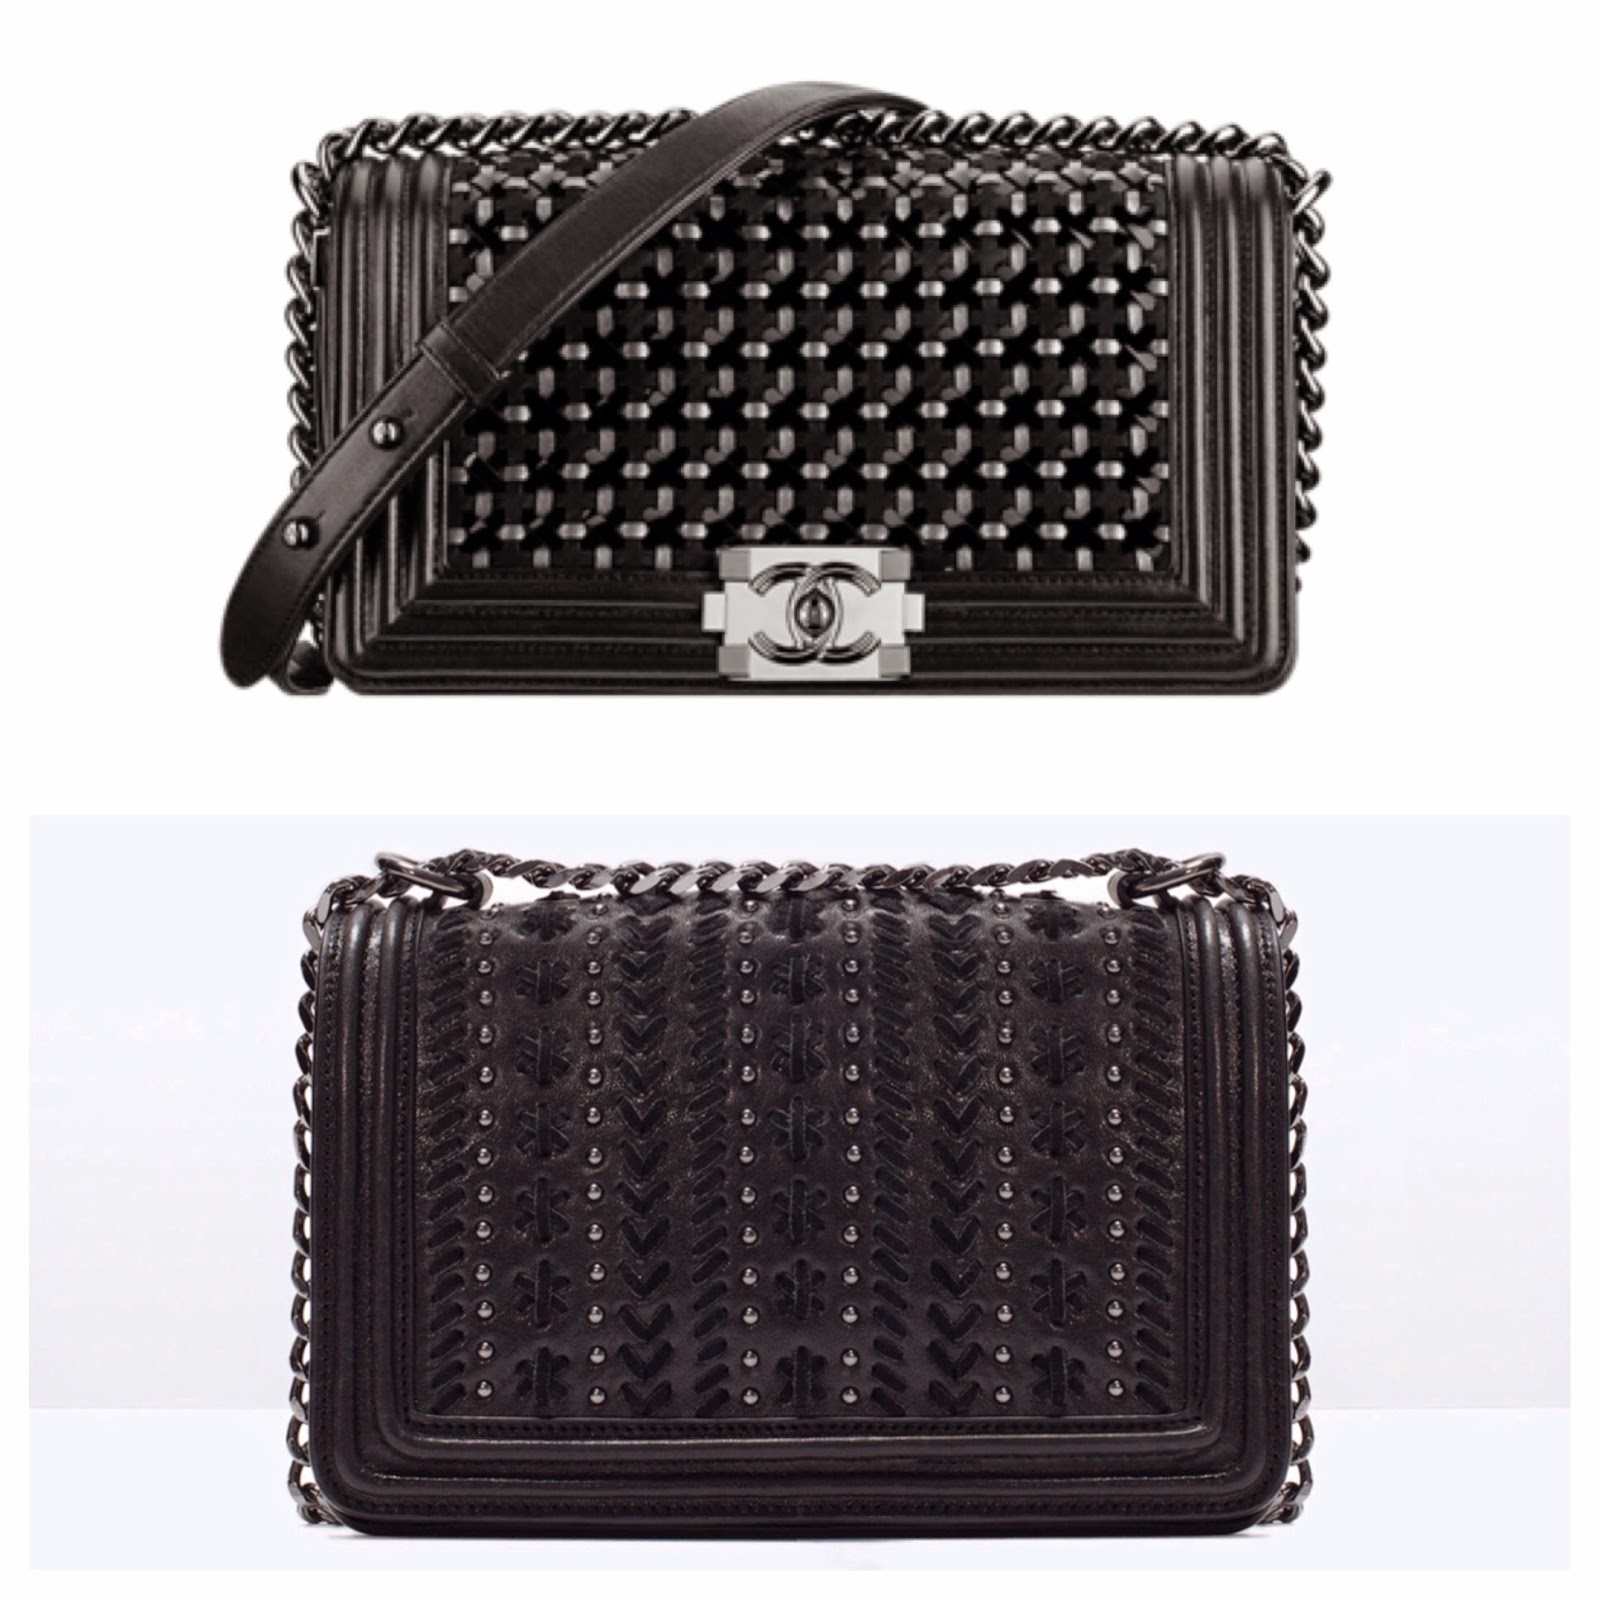 647bfeaa9ef4 Zara dupe! Steal the Style of the Boy Chanel Handbag!